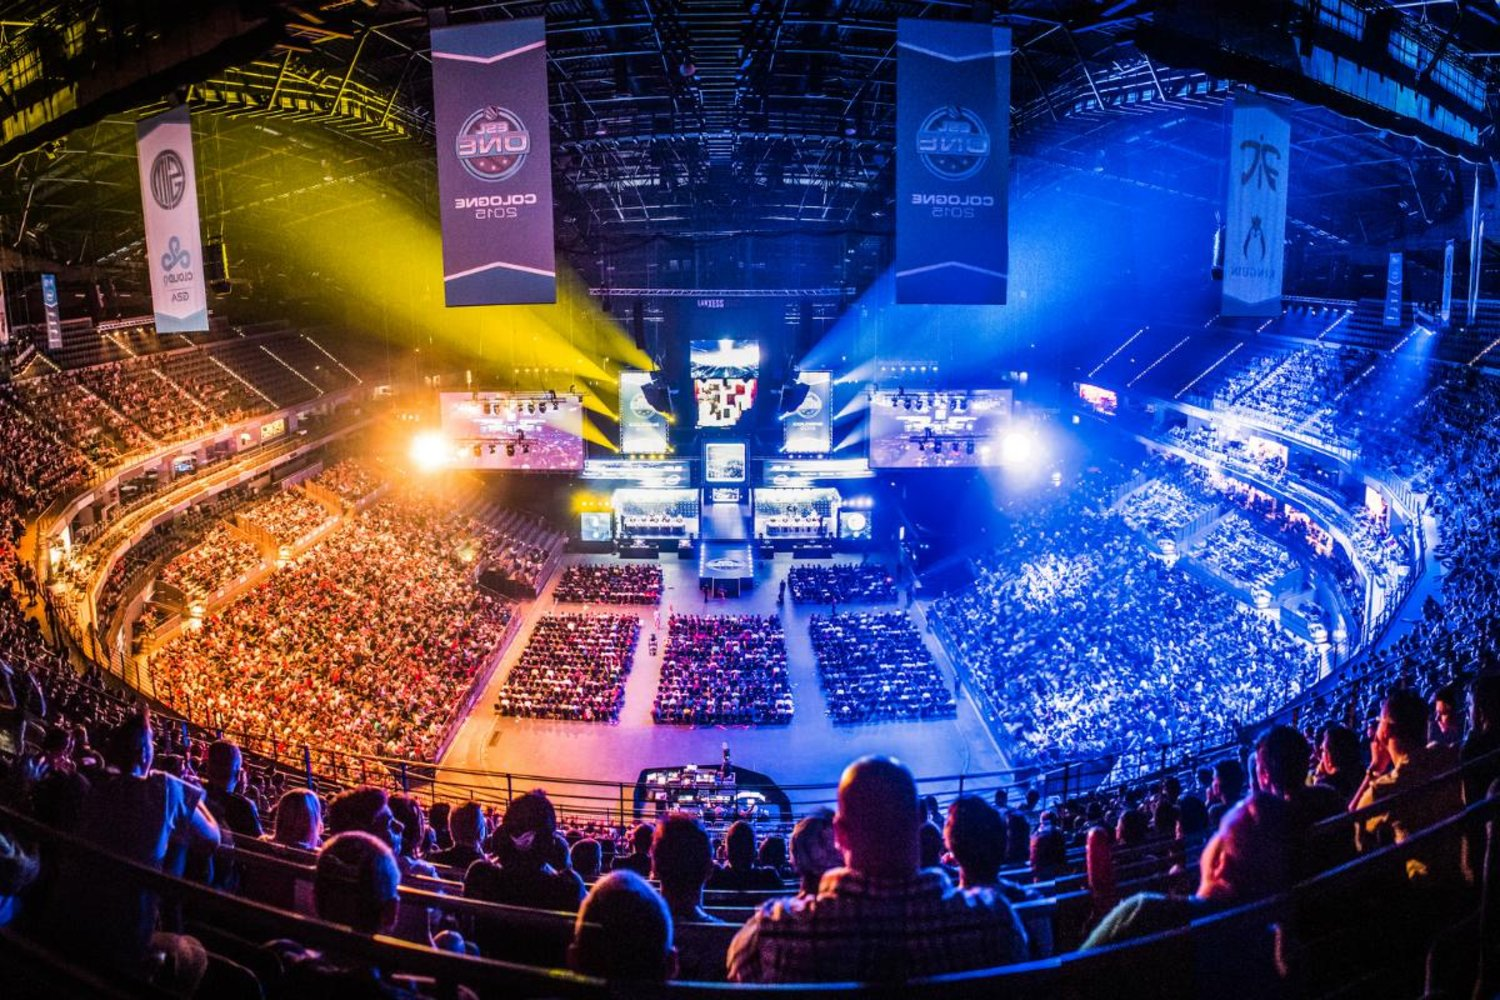 esports as a trend How the growth of esports compares to traditional sports trends dean takahashi @deantak november 18, 2016 9:00 am above: esports is a fast-growing space.